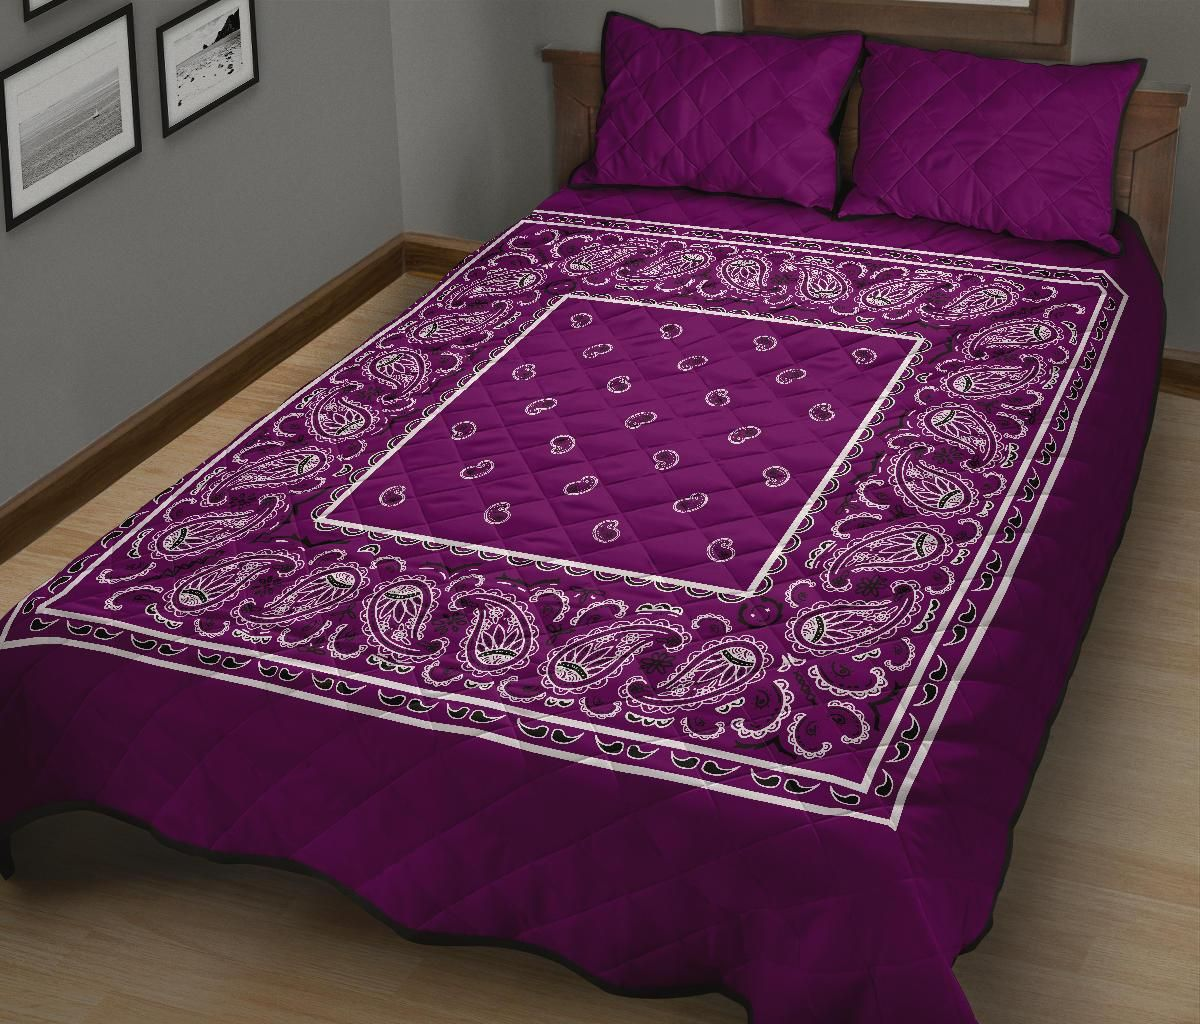 Wild Plum Bandana Bed Quilts with Shams - placeholder placeholder